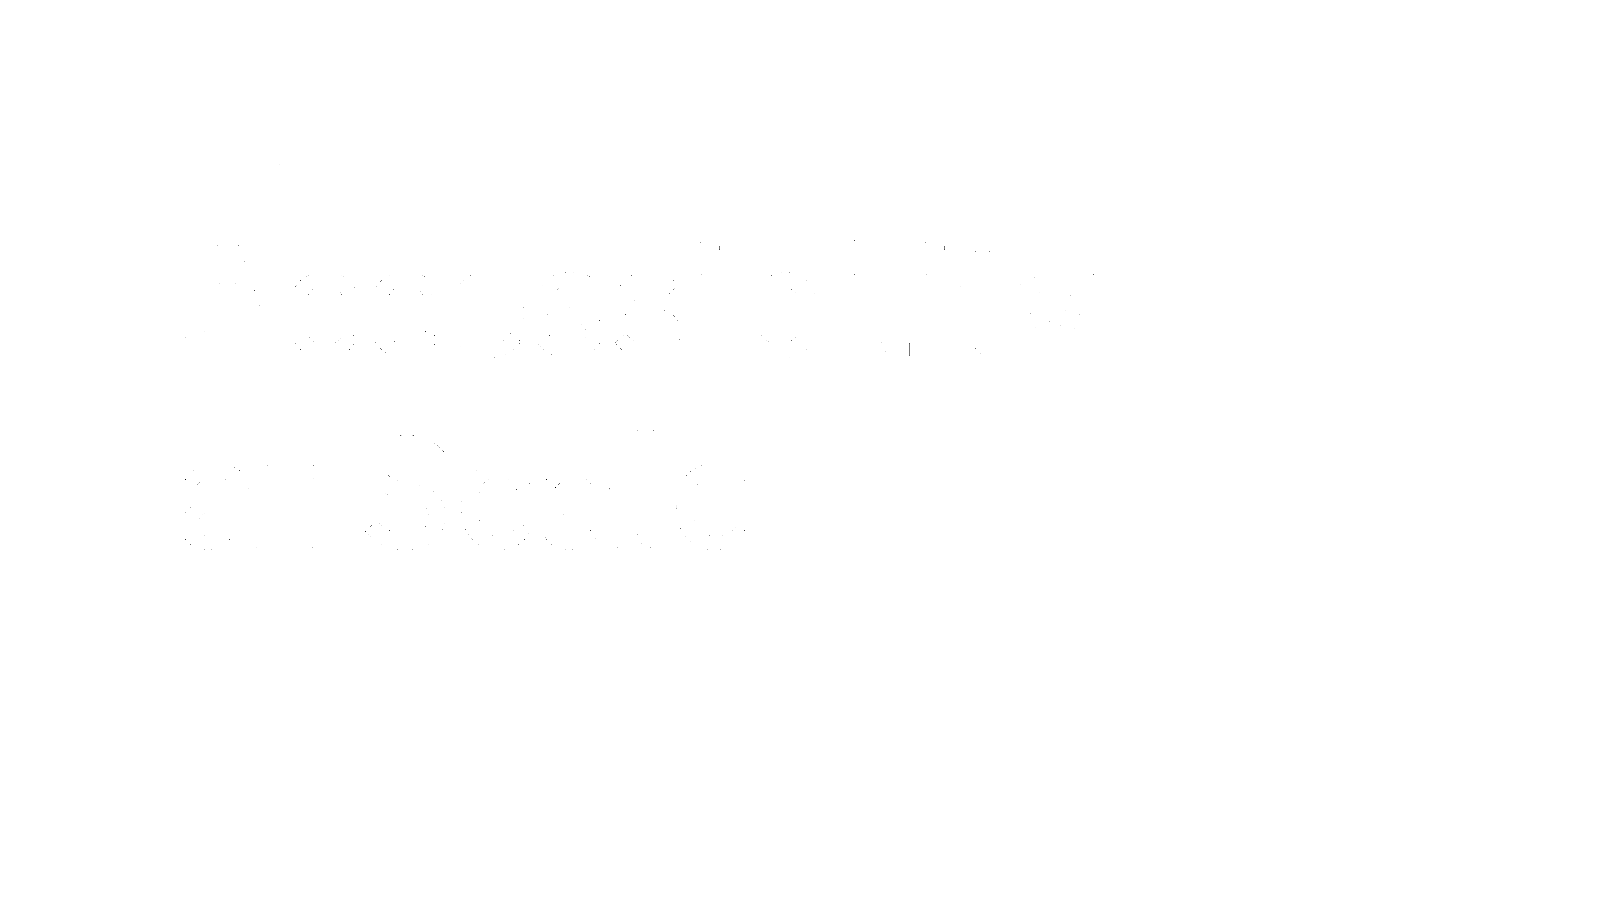 Accessibility at Scale